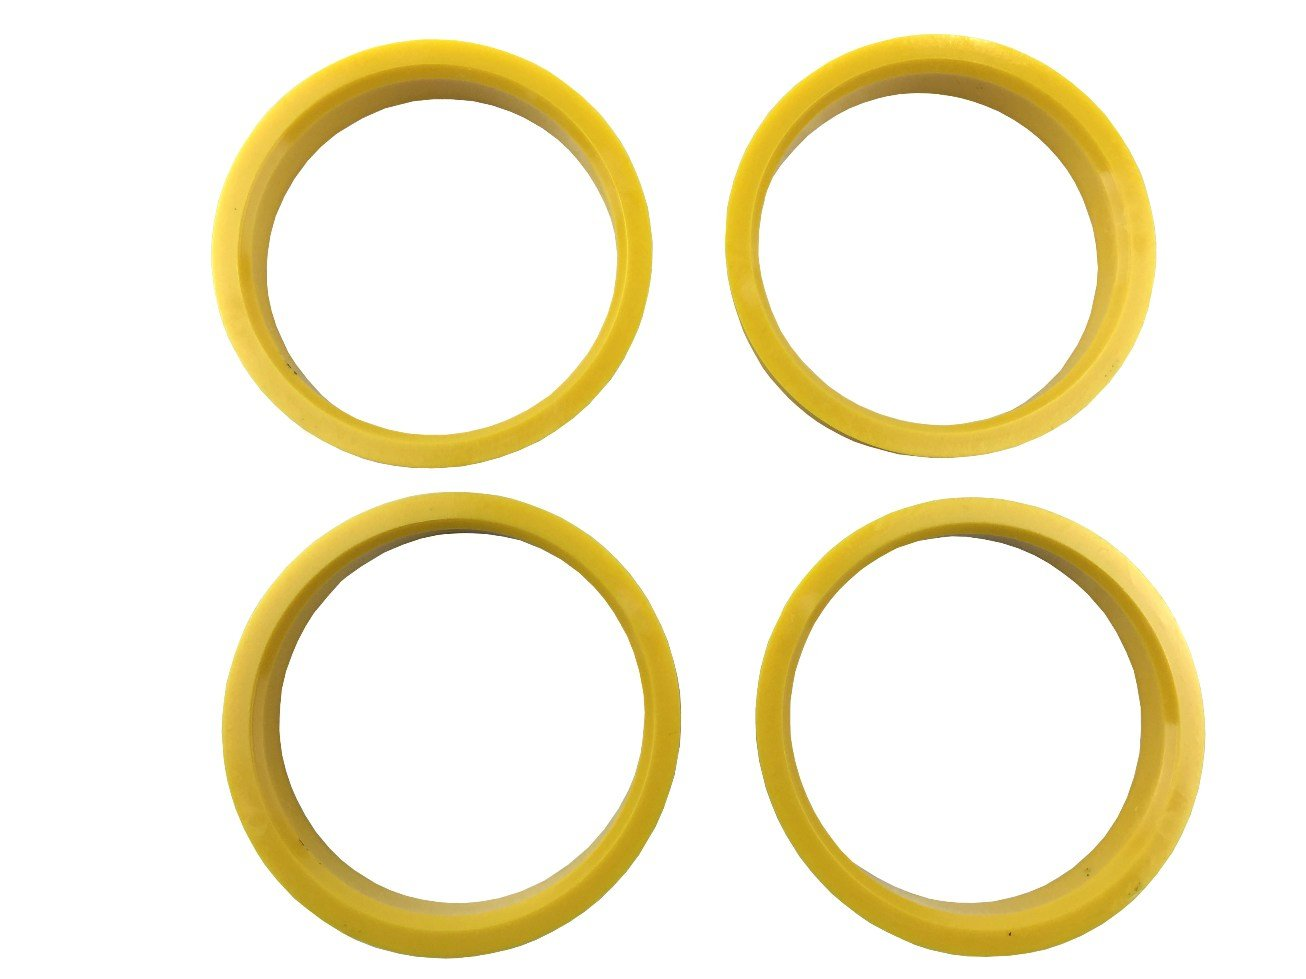 4 Pieces - Hub Centric Rings - 72.6mm OD to 63.4mm ID - Yellow Poly Carbon Hub Rings JianDa